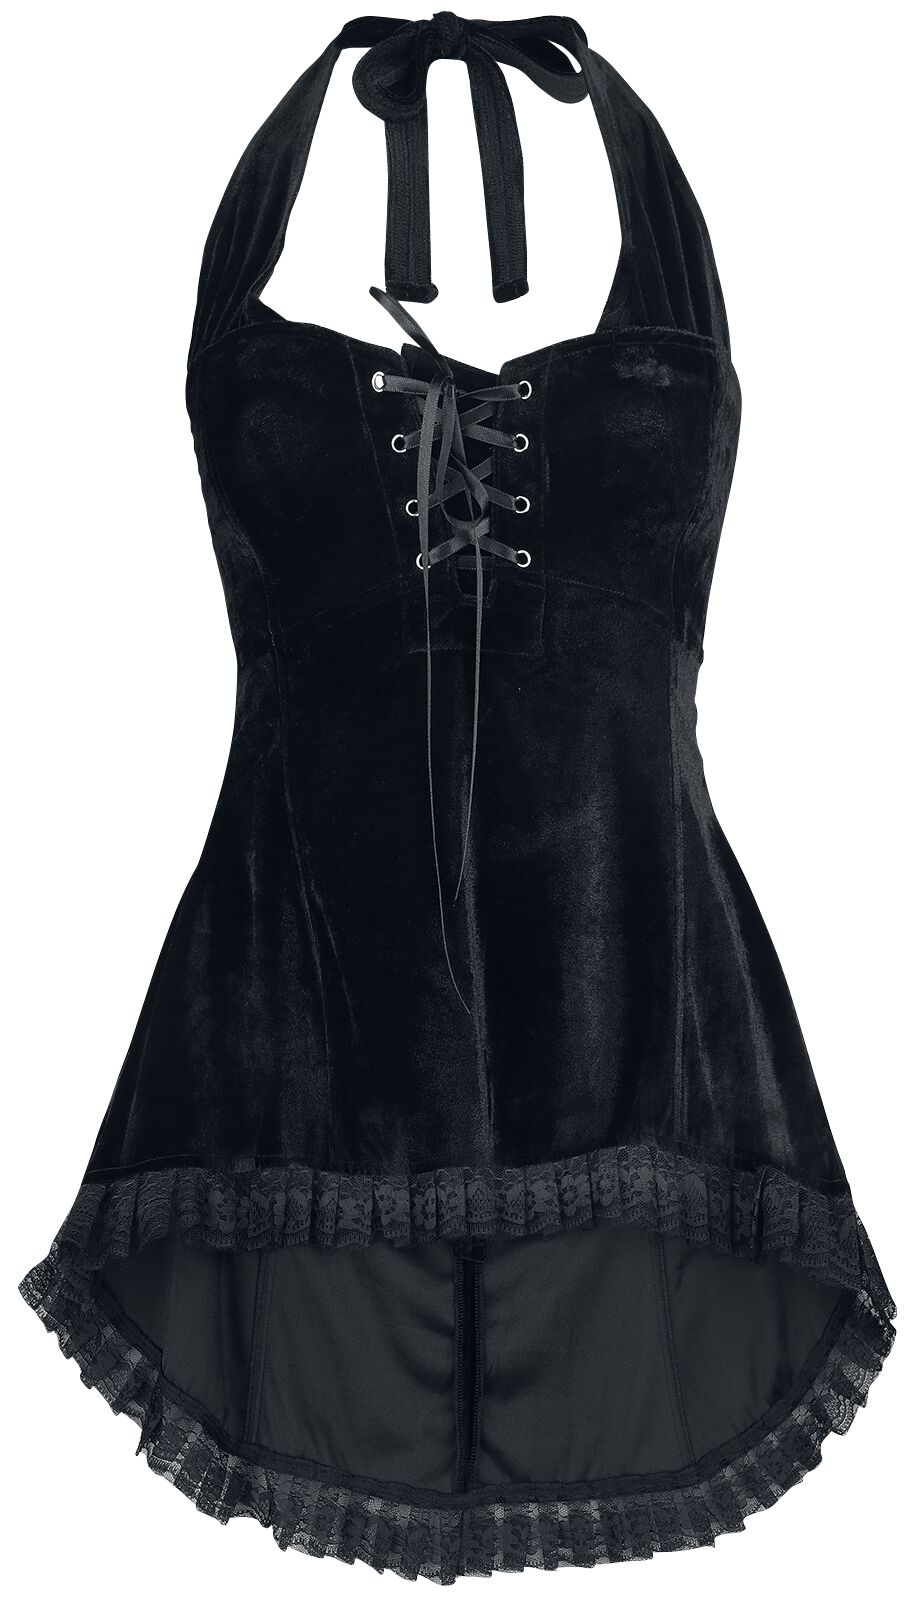 Image of   Gothicana by EMP Kaylee Girlie top sort